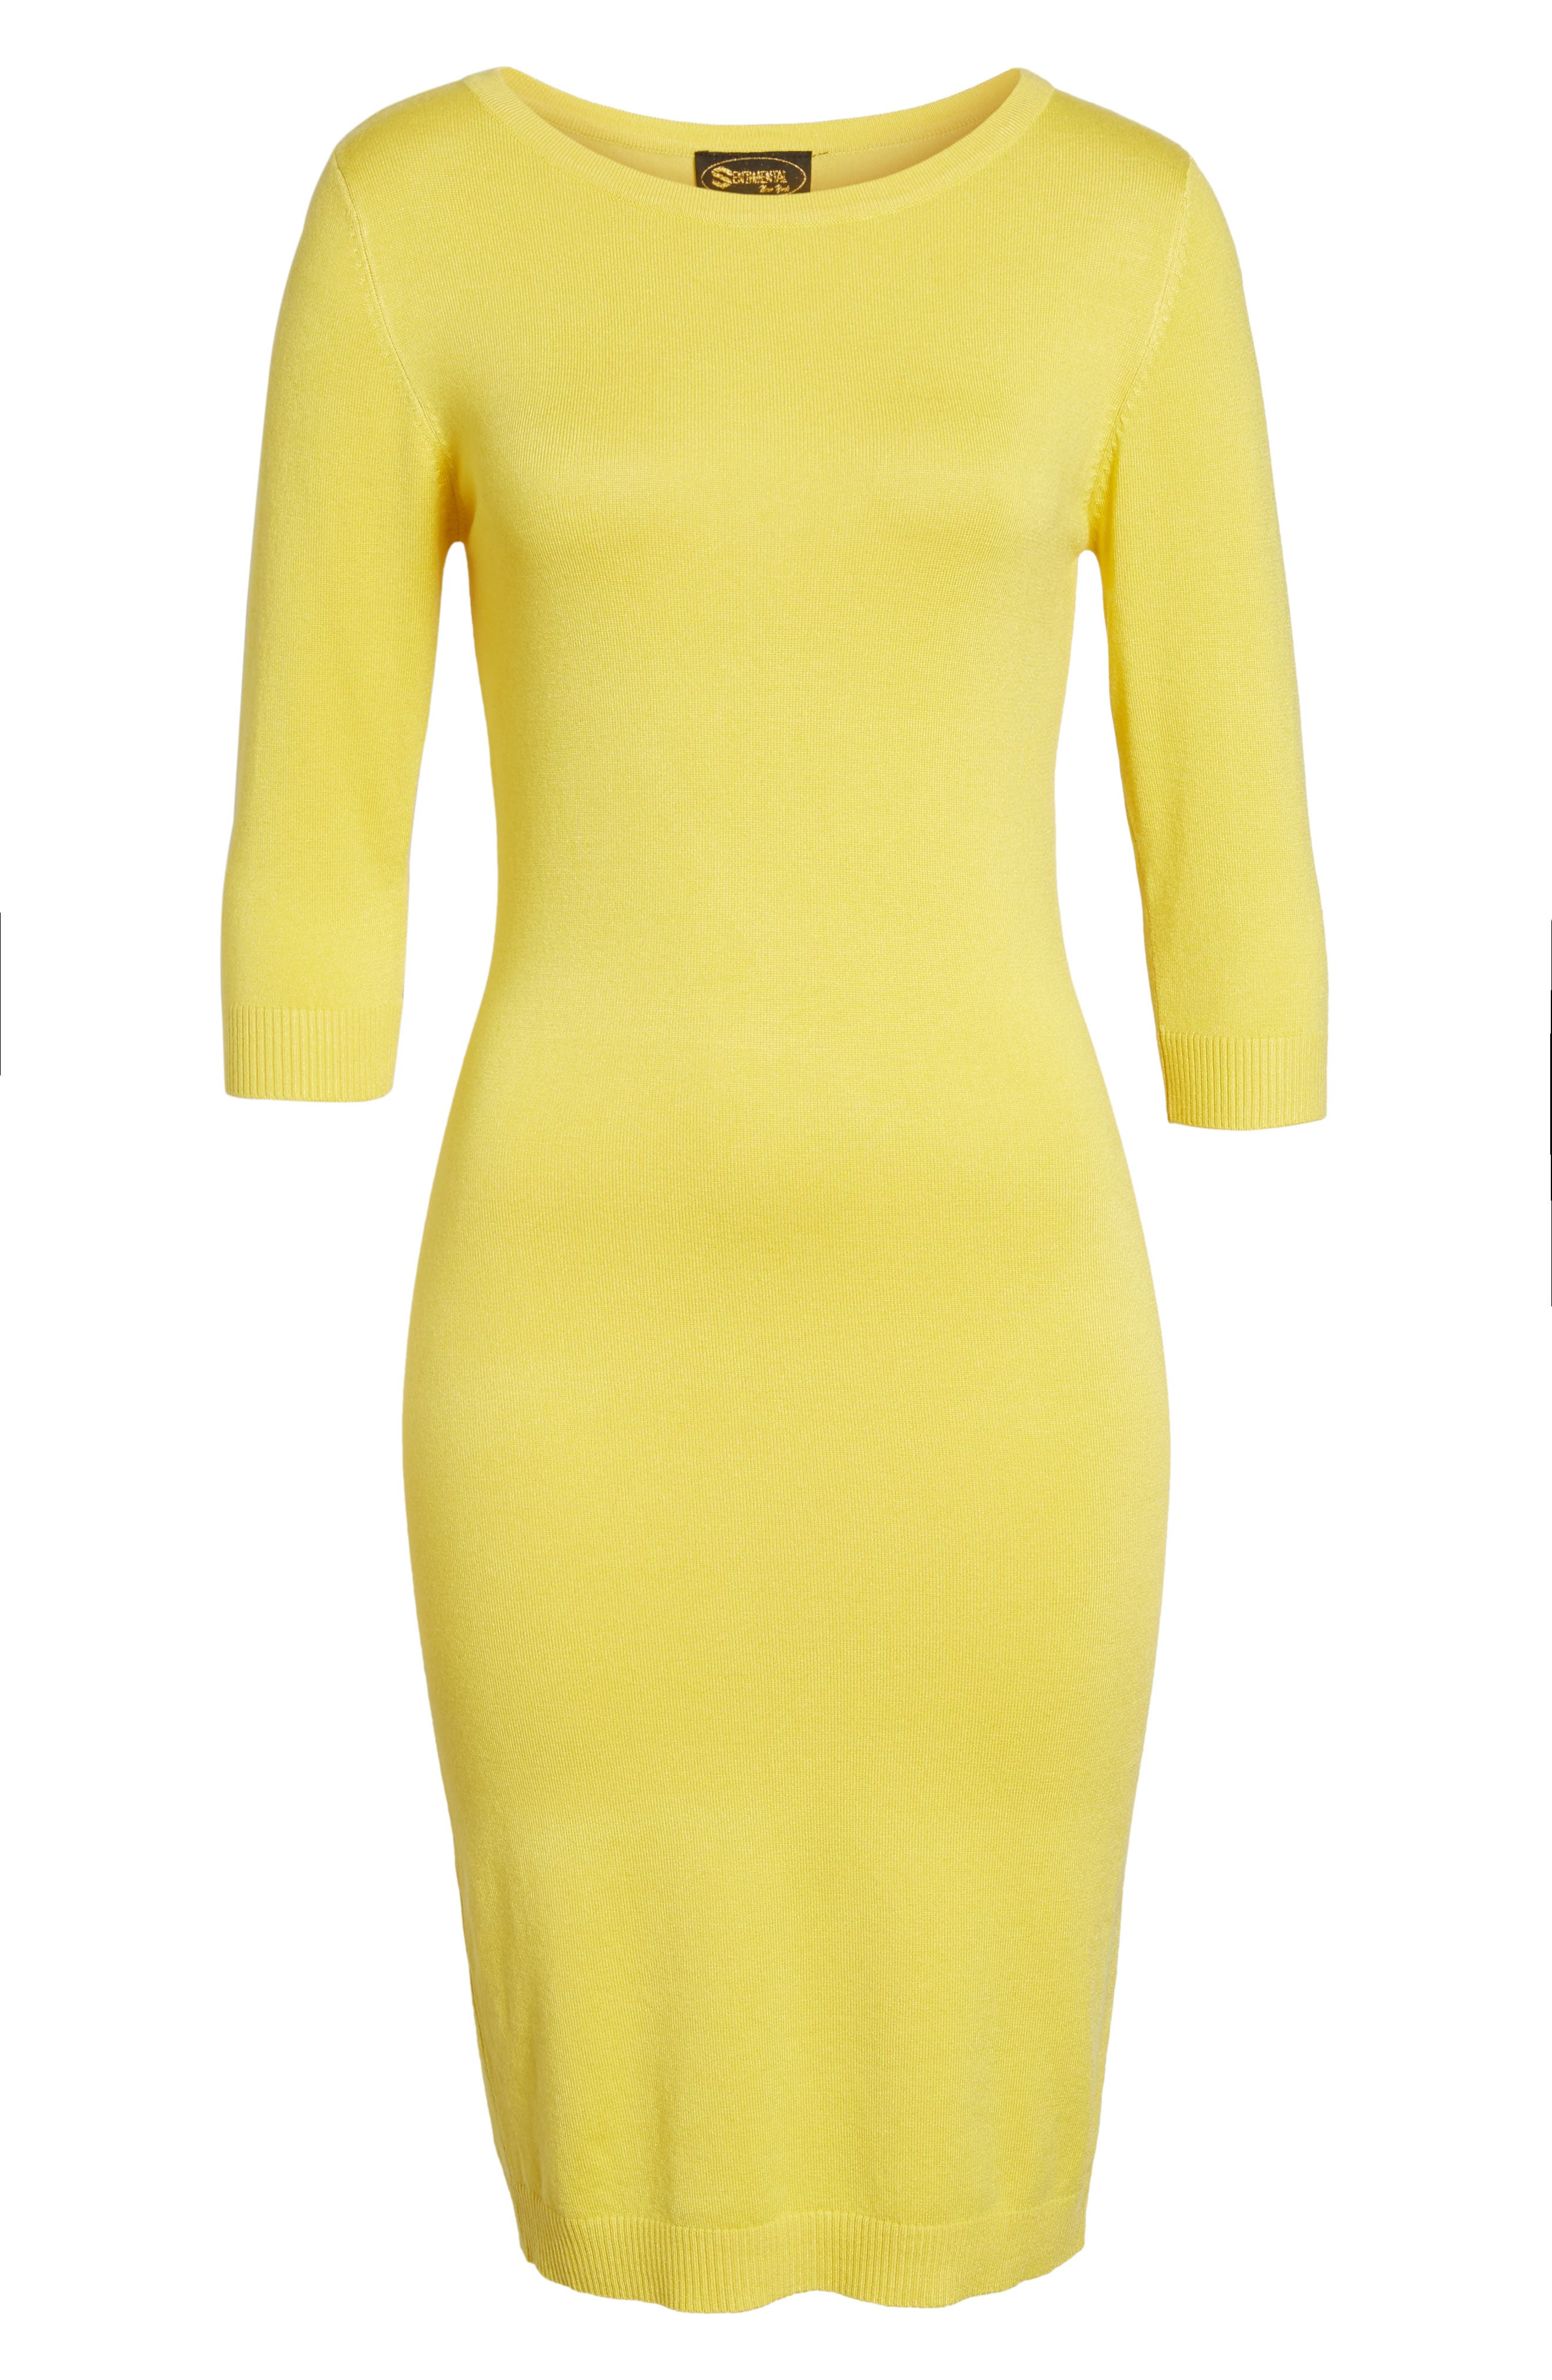 Elbow Sleeve Sweater Dress,                             Alternate thumbnail 6, color,                             Yellow